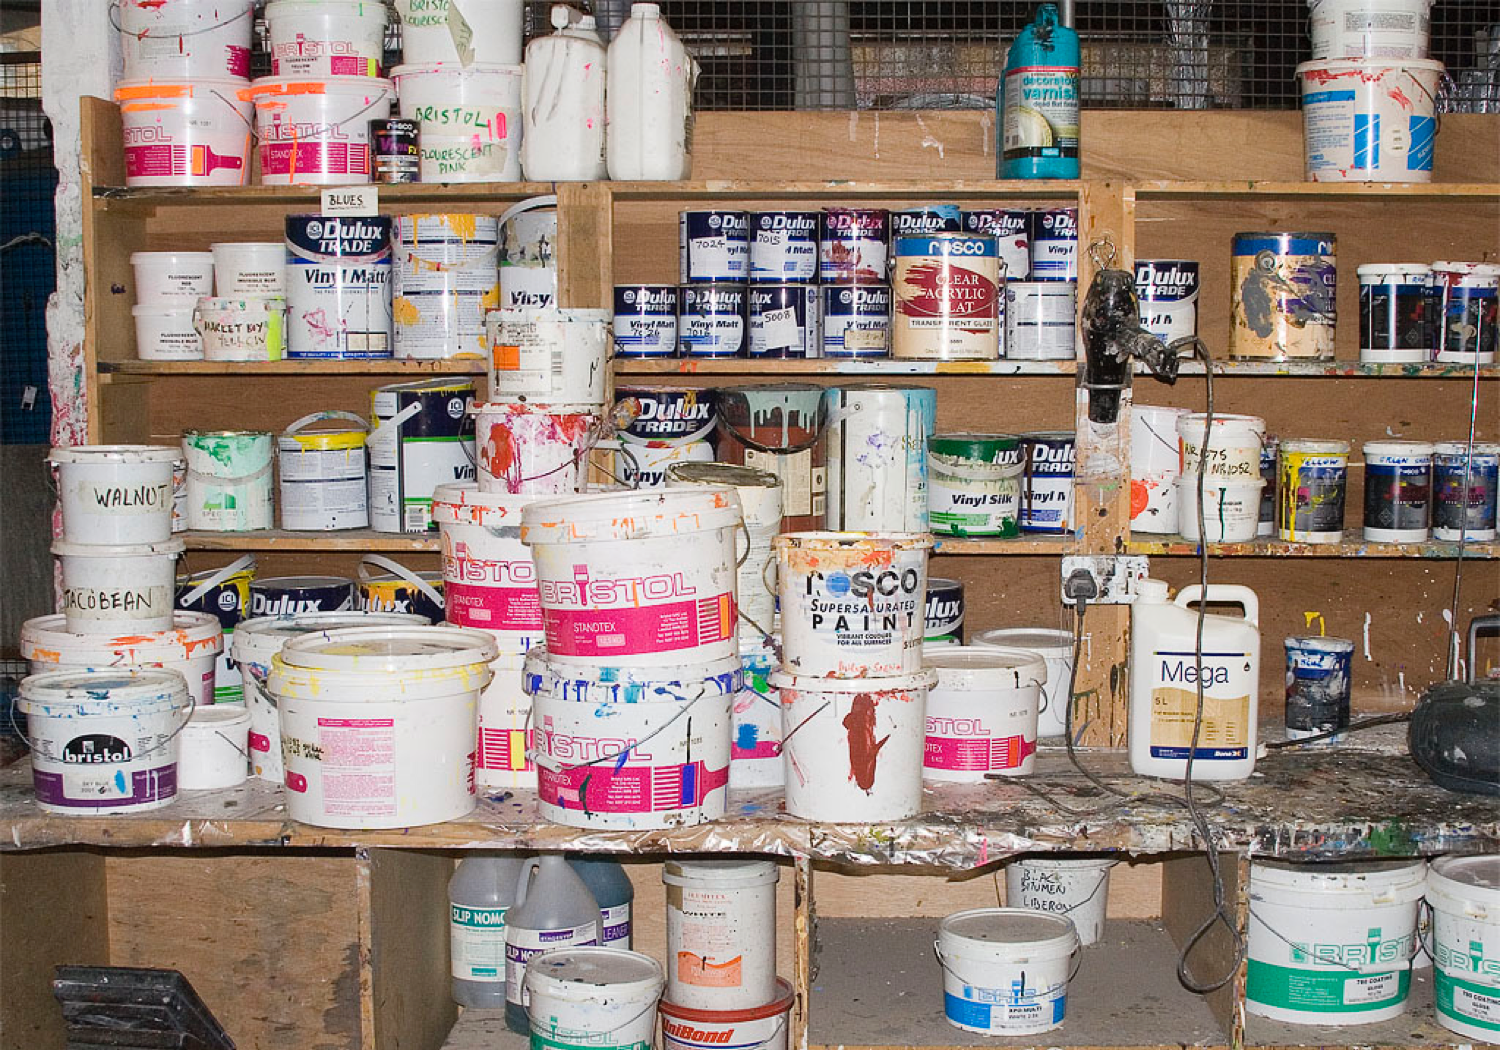 Photograph showing shelves holding the stocks of various paint colours and types in the paint room at the National Theatre (credit: Hilary Vernon-Smith)